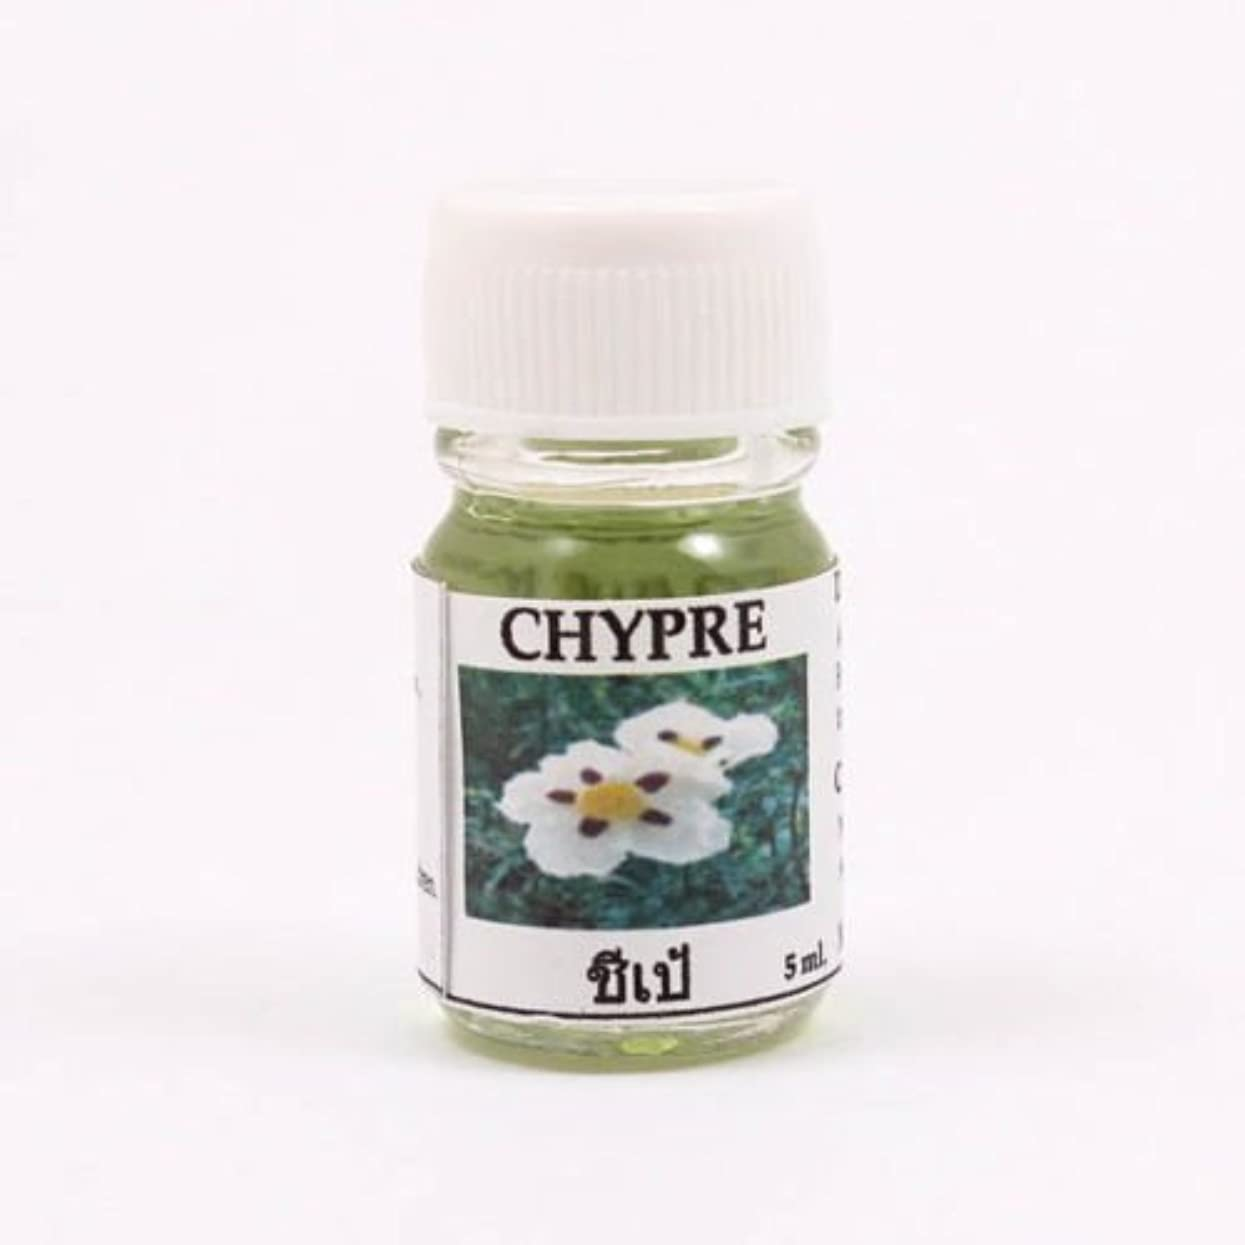 6X Chypre Aroma Fragrance Essential Oil 5ML. (cc) Diffuser Burner Therapy